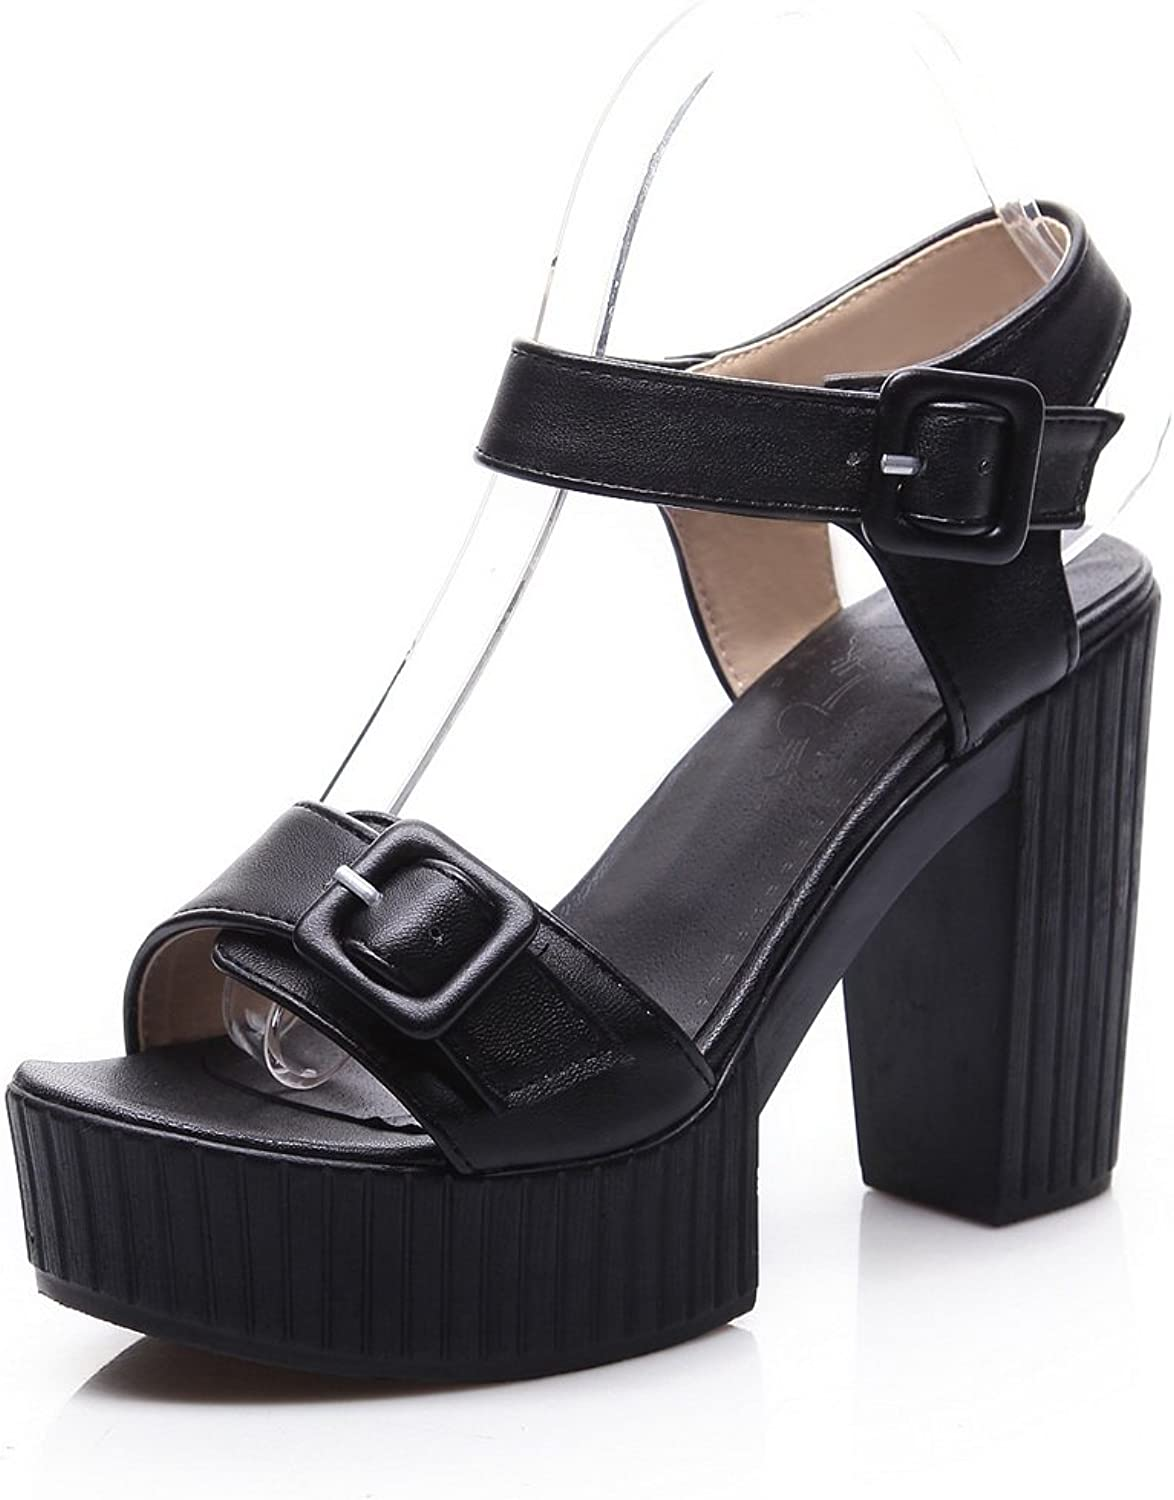 AllhqFashion Women's Soft Material Buckle Open Toe High Heels Solid Sandals